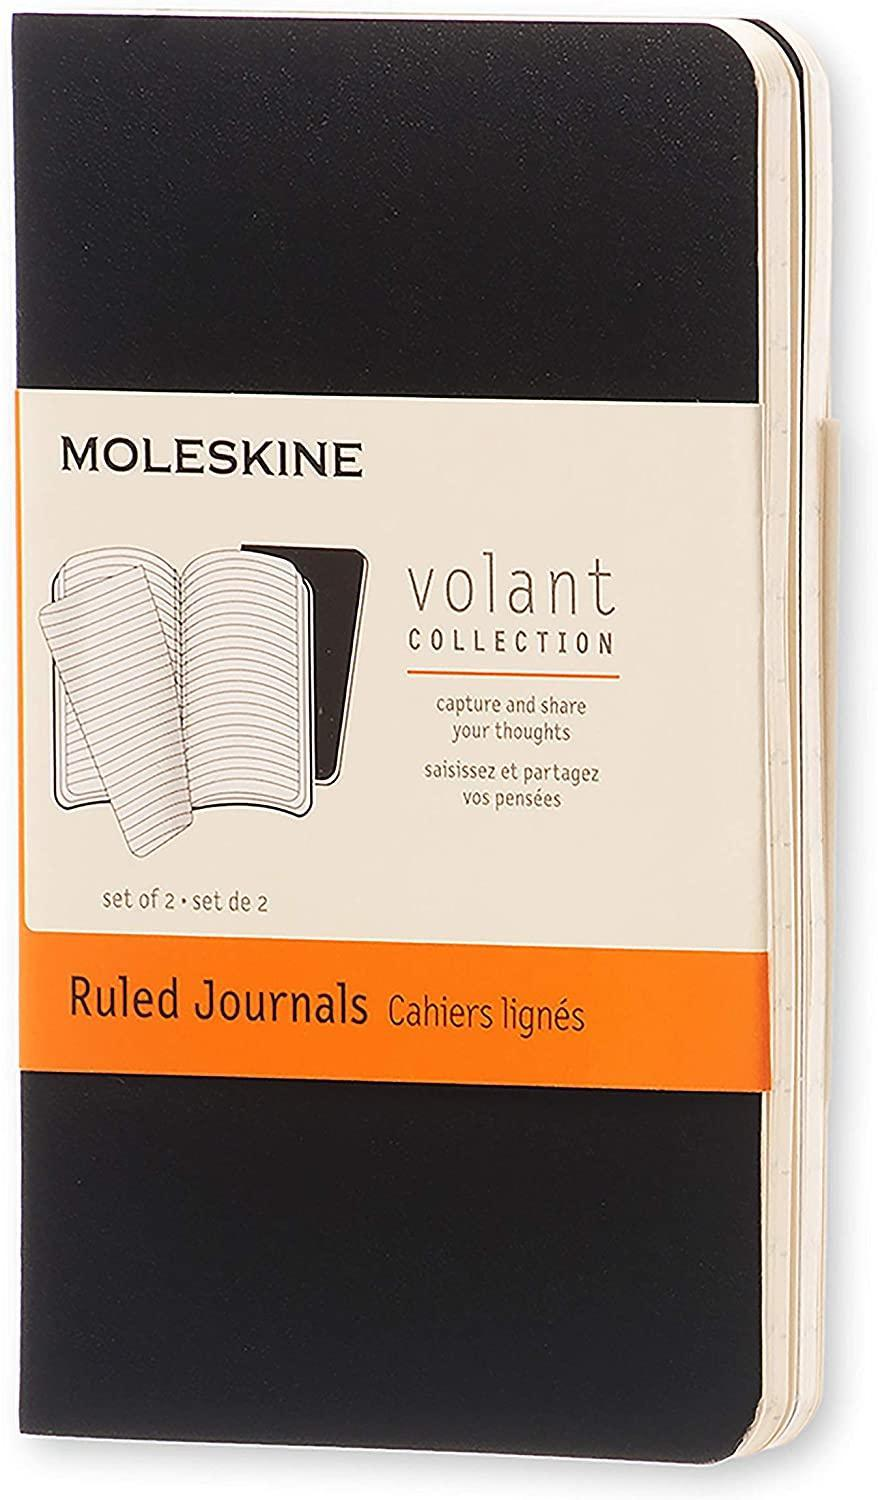 """<h3>Moleskine XS Volant Journal</h3><br>Two extra-small sized Moleskine journals that they can jot down all their BIG 2021 to-dos on.<br><br><strong>Moleskine</strong> XS Volant Journal (Set of 2), $, available at <a href=""""https://amzn.to/3obgYLi"""" rel=""""nofollow noopener"""" target=""""_blank"""" data-ylk=""""slk:Amazon"""" class=""""link rapid-noclick-resp"""">Amazon</a>"""